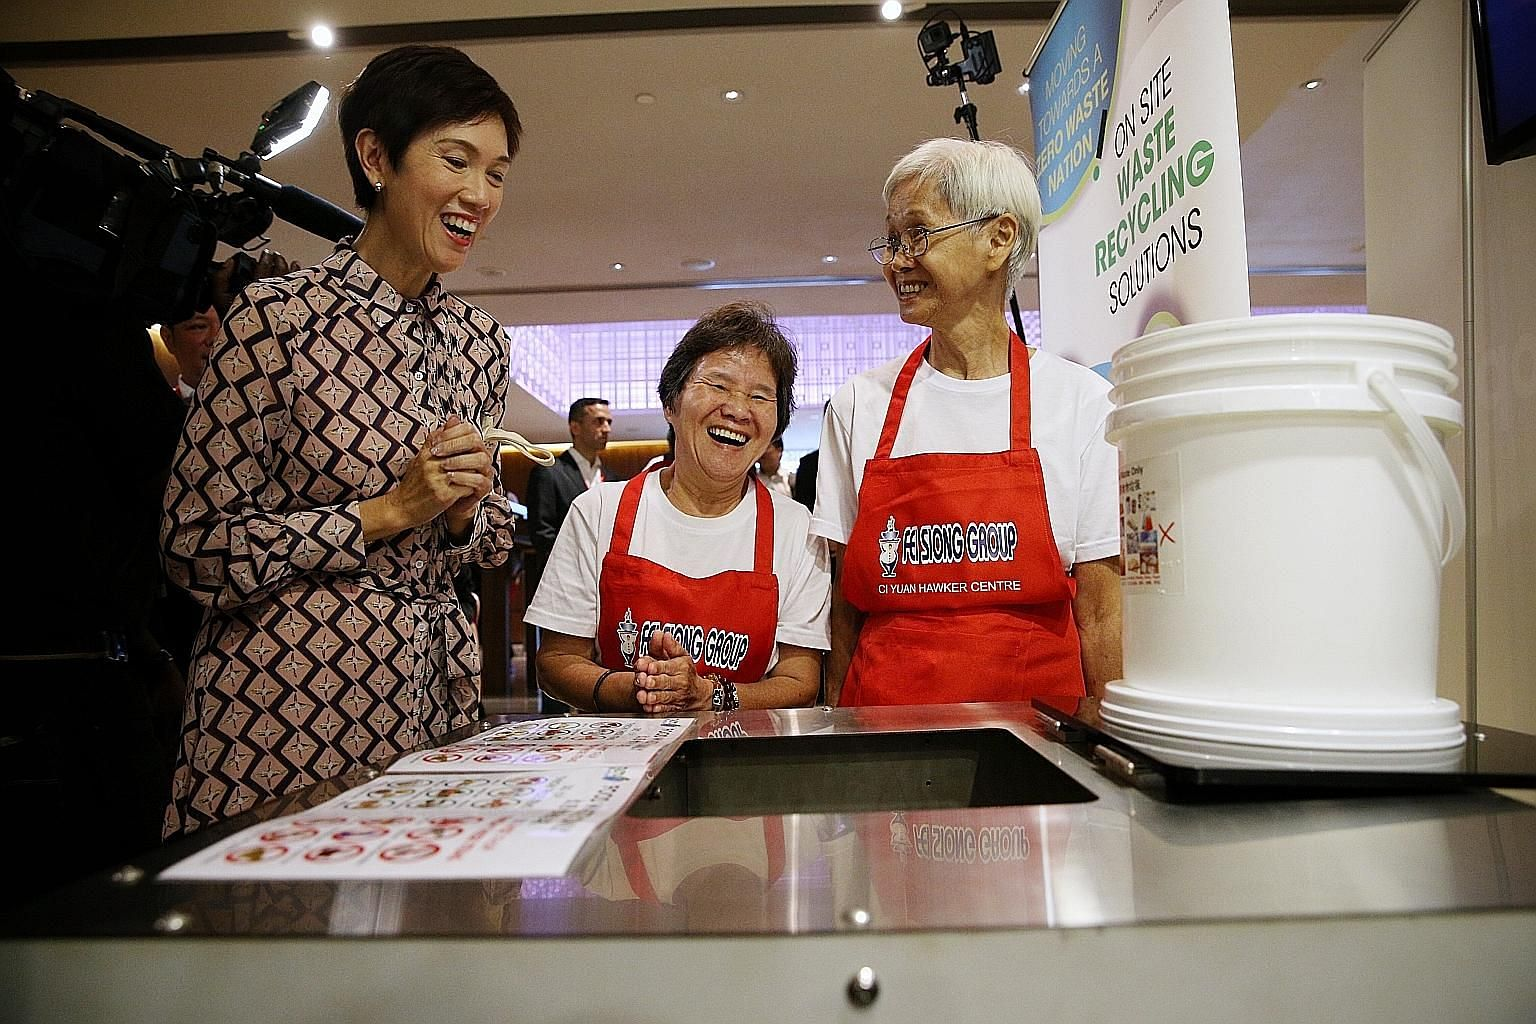 (From left) Manpower Minister Josephine Teo chatting with Madam Ong Poh Kee, 57, and Madam Chua Cher Kee, 75, both cleaning ambassadors at Fei Siong, about an eco-digester that turns food waste into water and carbon dioxide and helps lighten cleaning